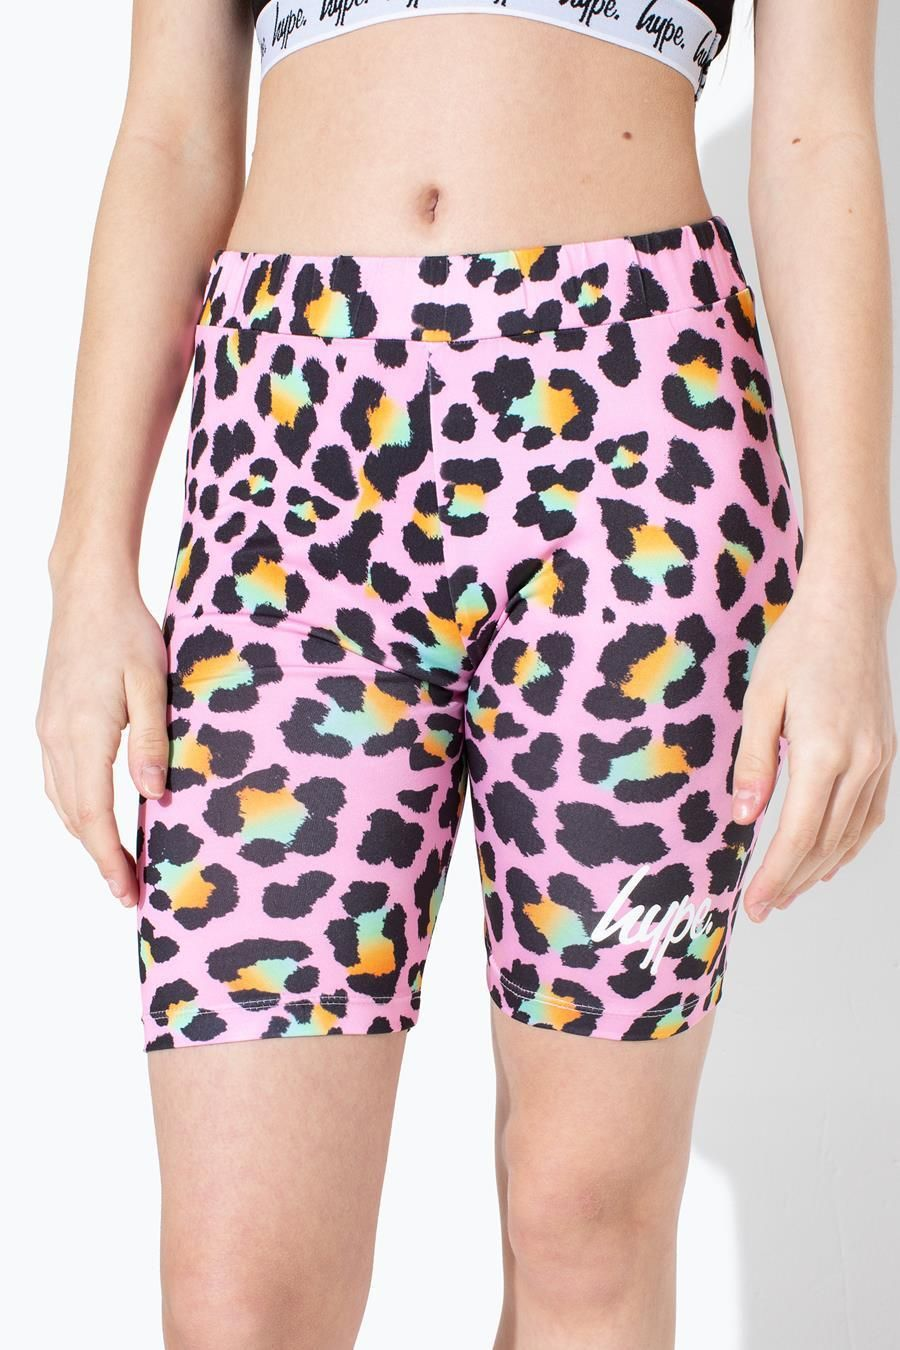 Hype Disco Leopard Kids Cycle Shorts 13Y